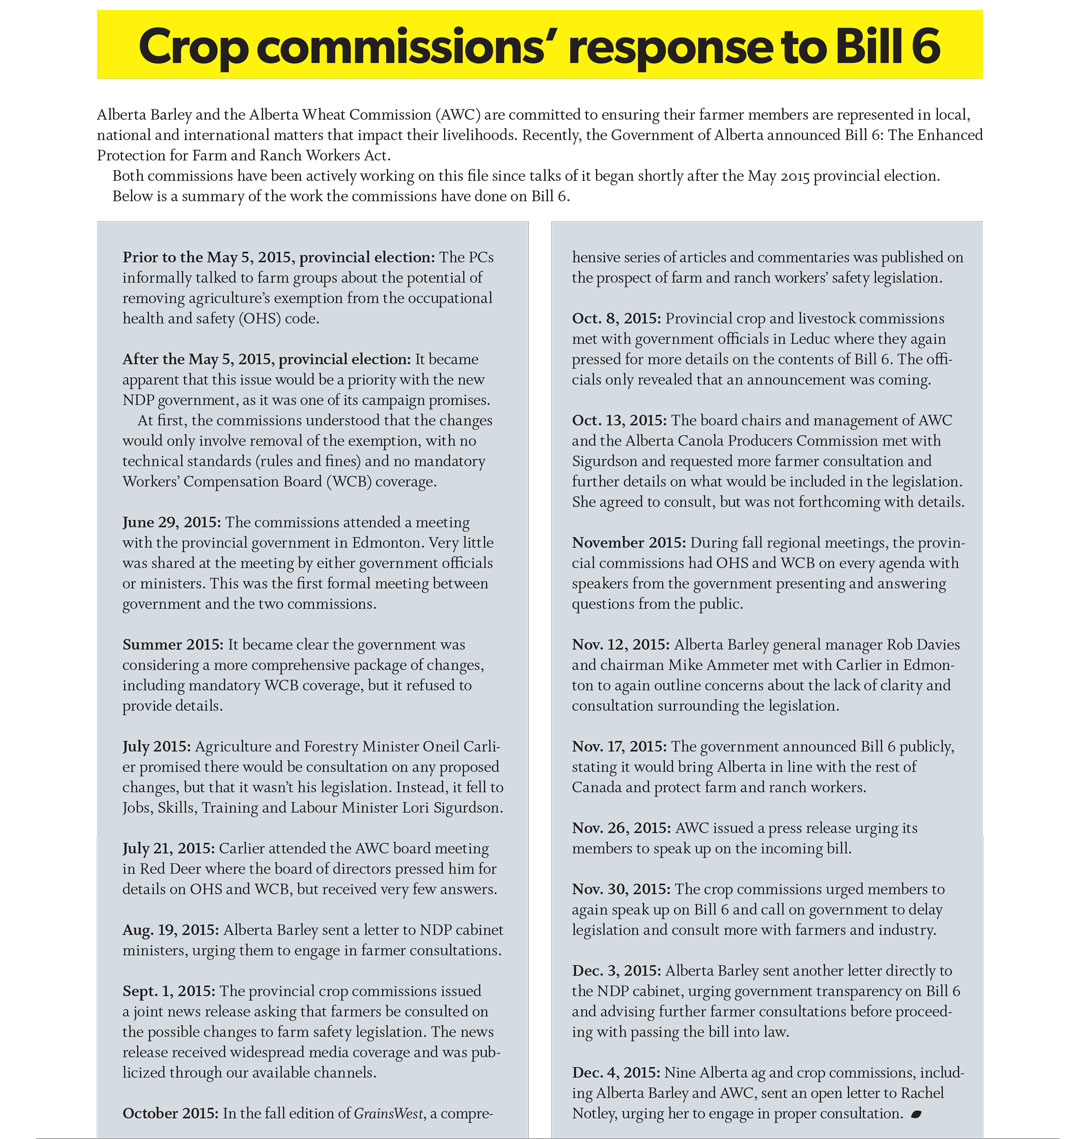 Crop commissions' response to Bill 6 | Alberta Barley